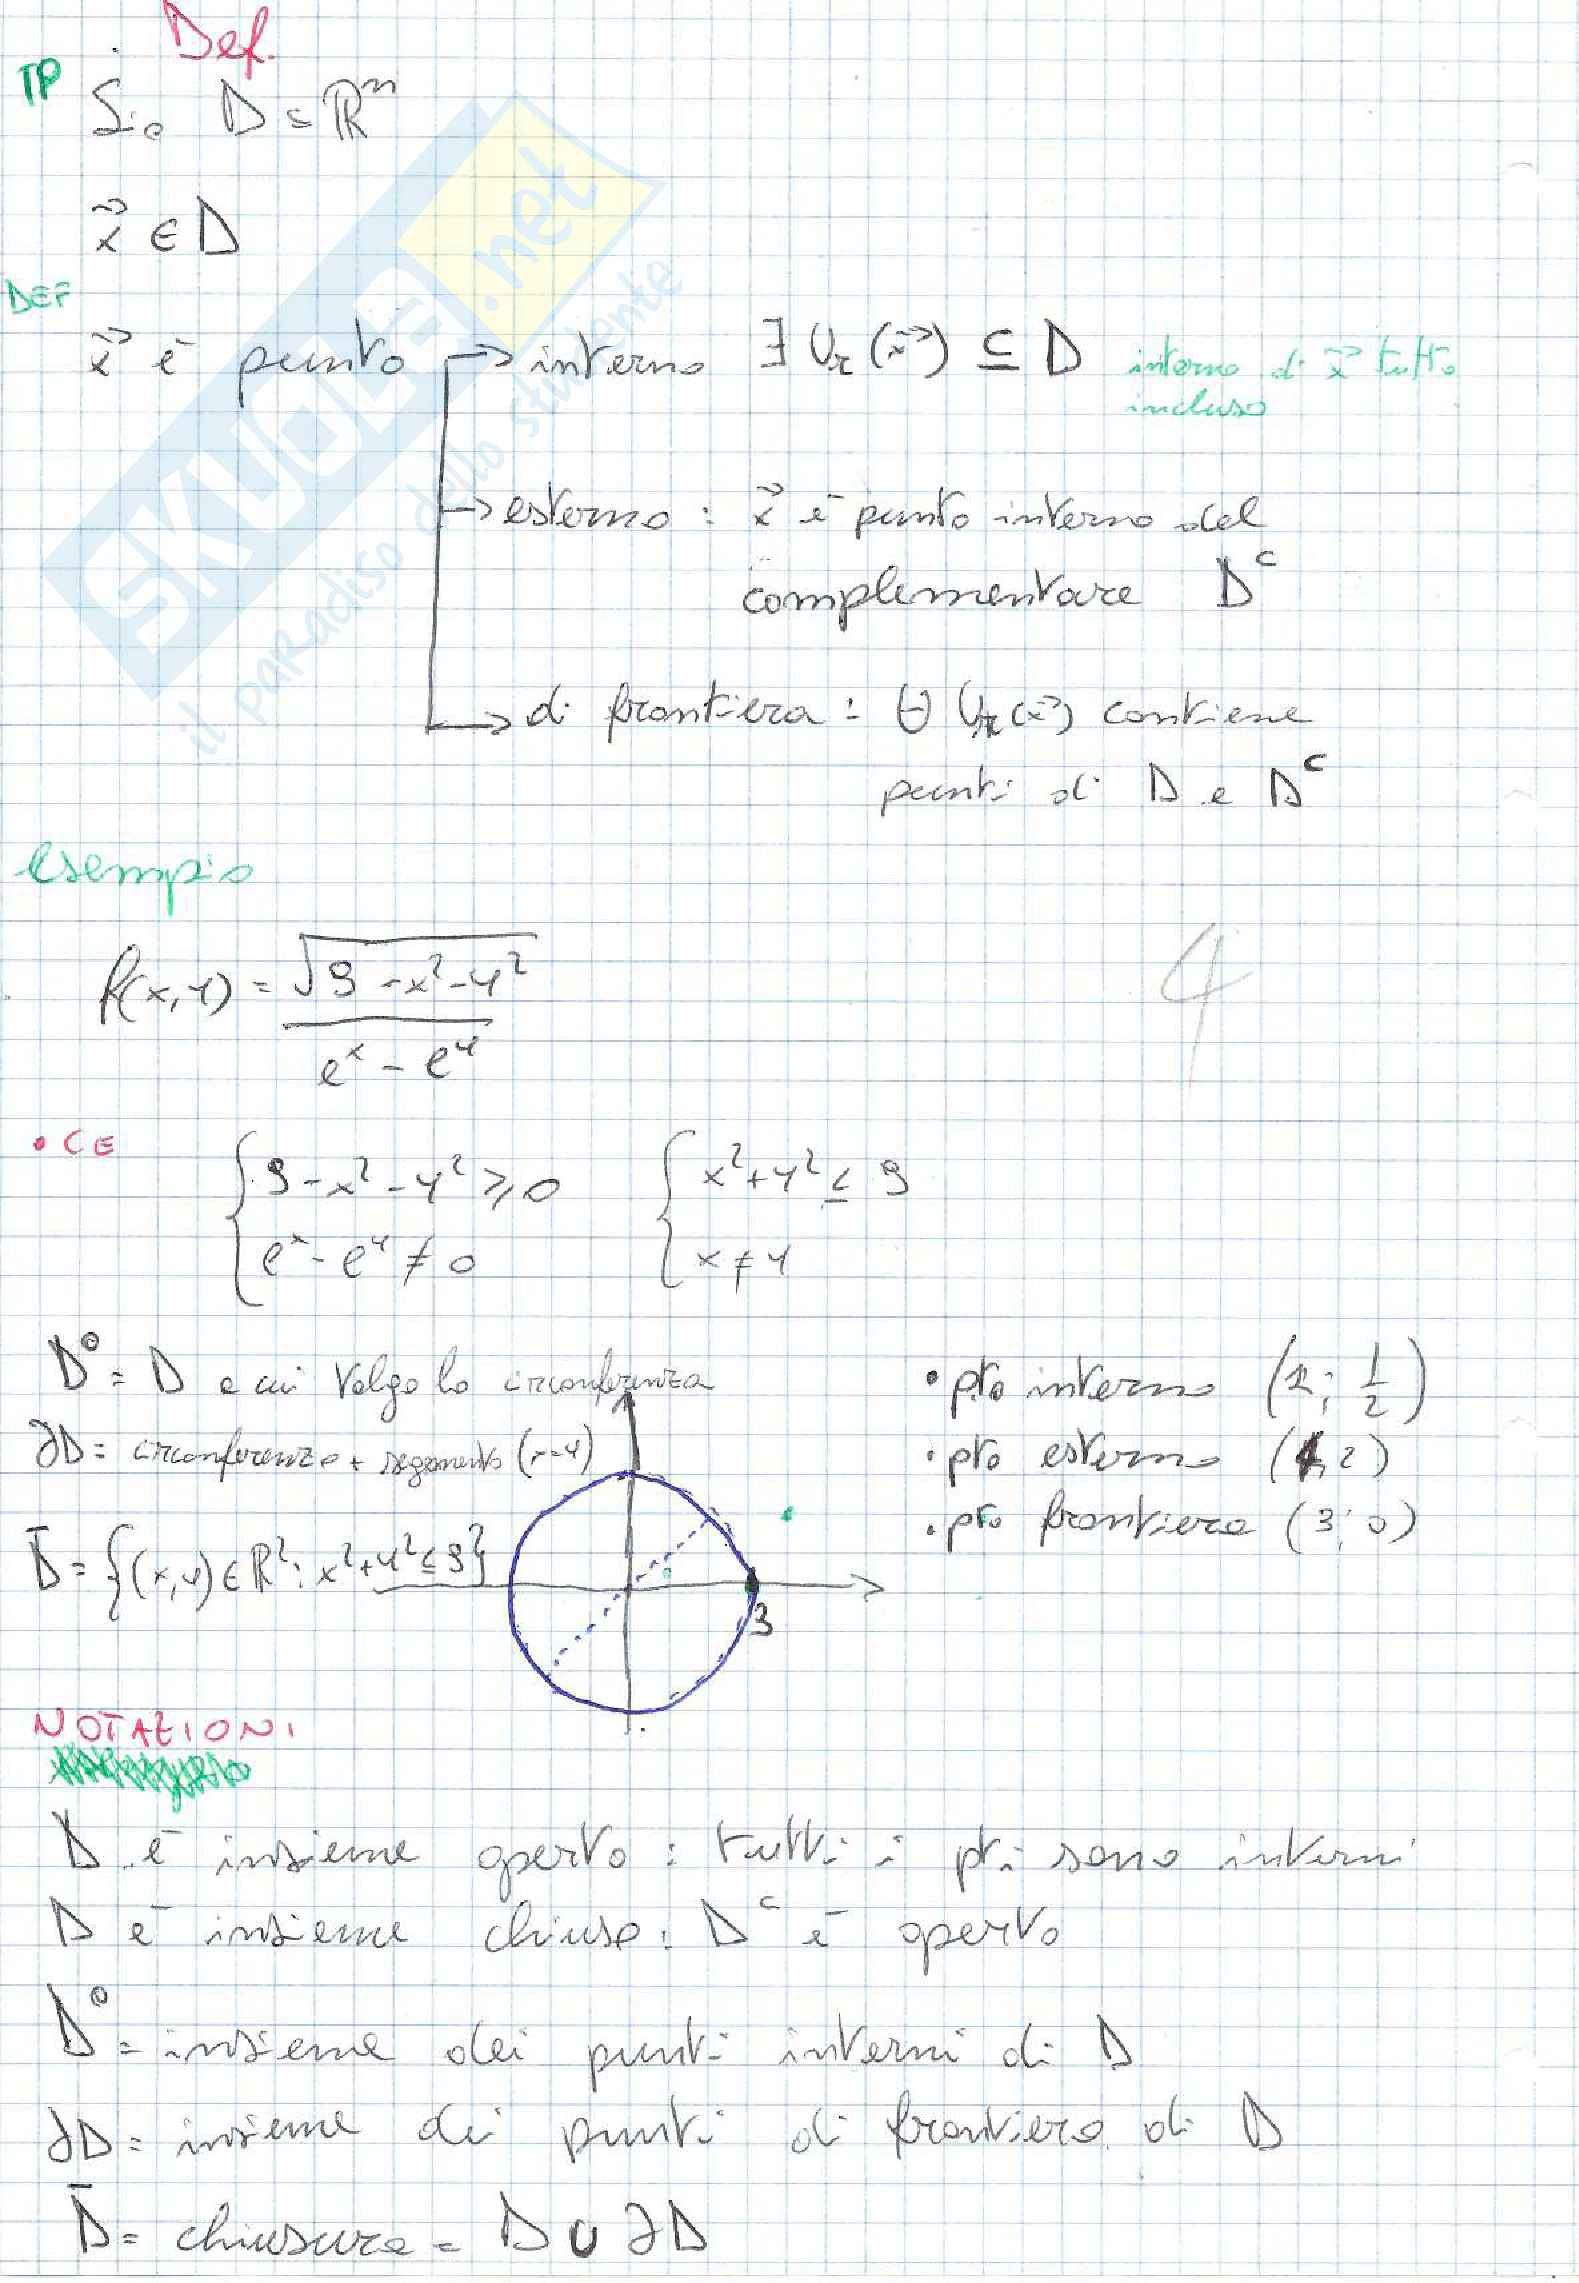 Analisi 2 - parte 1 Pag. 36